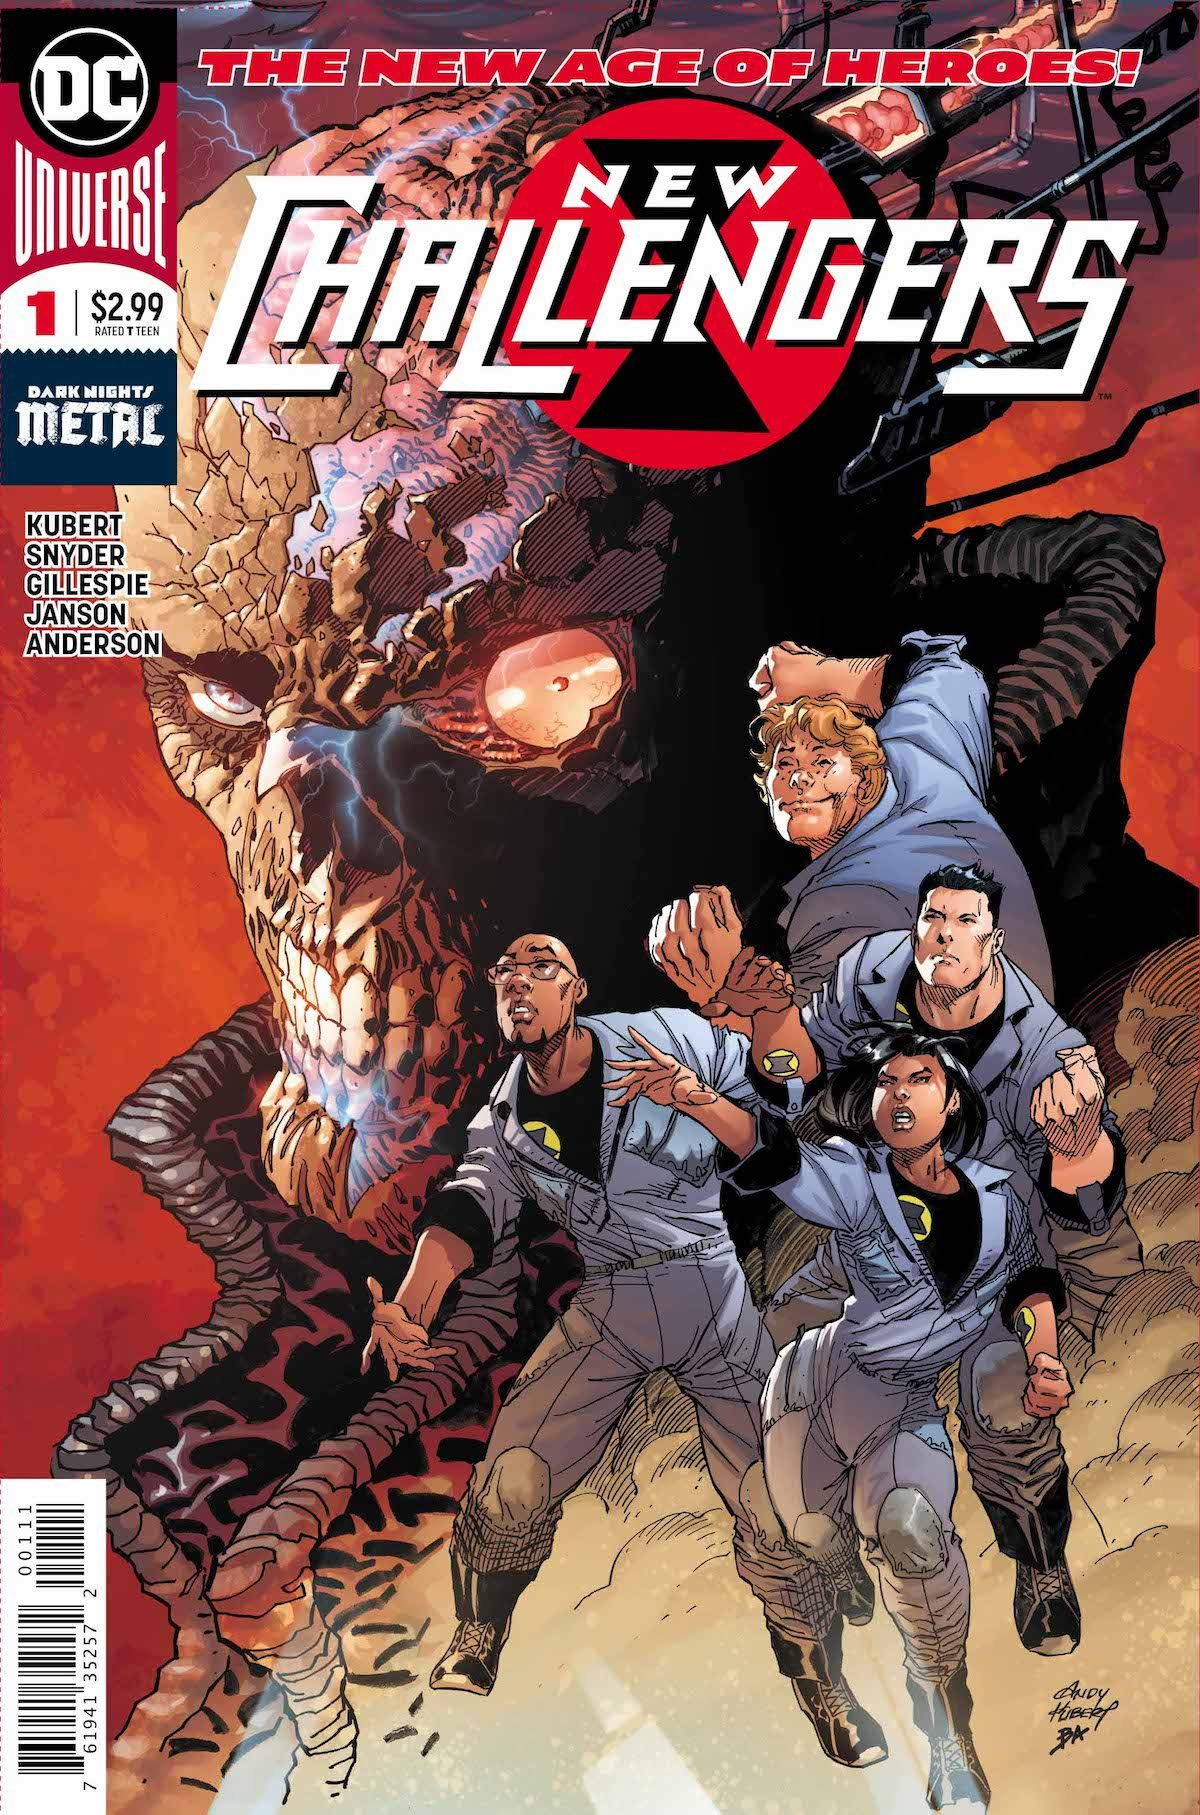 New Challengers #1 cover